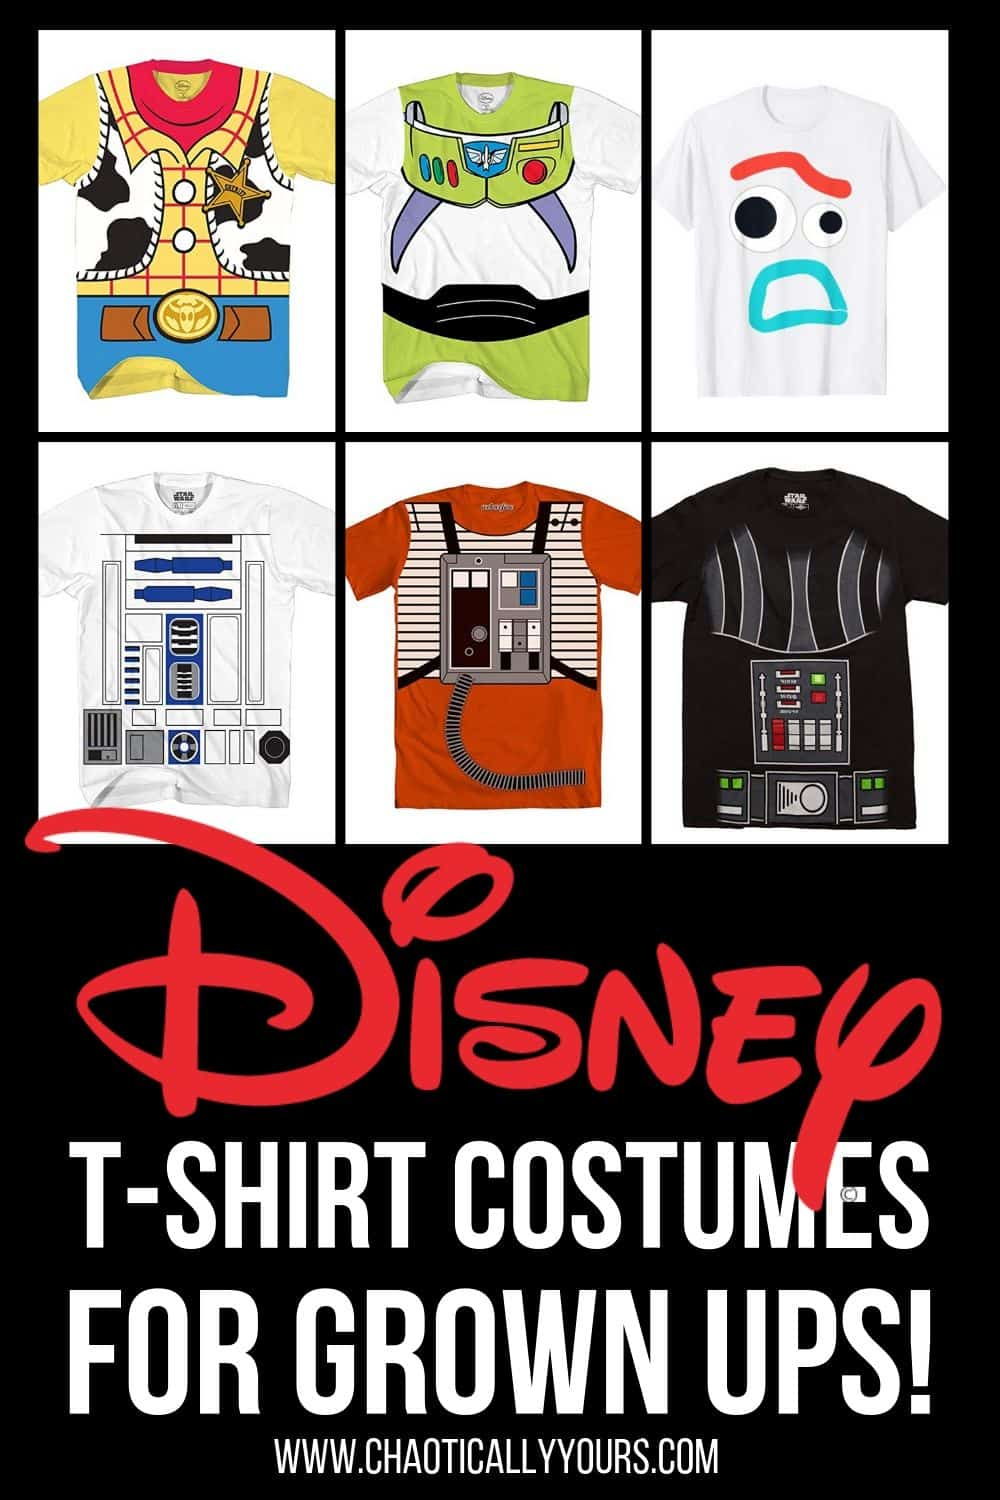 Disney T-shirt costumes for adults!